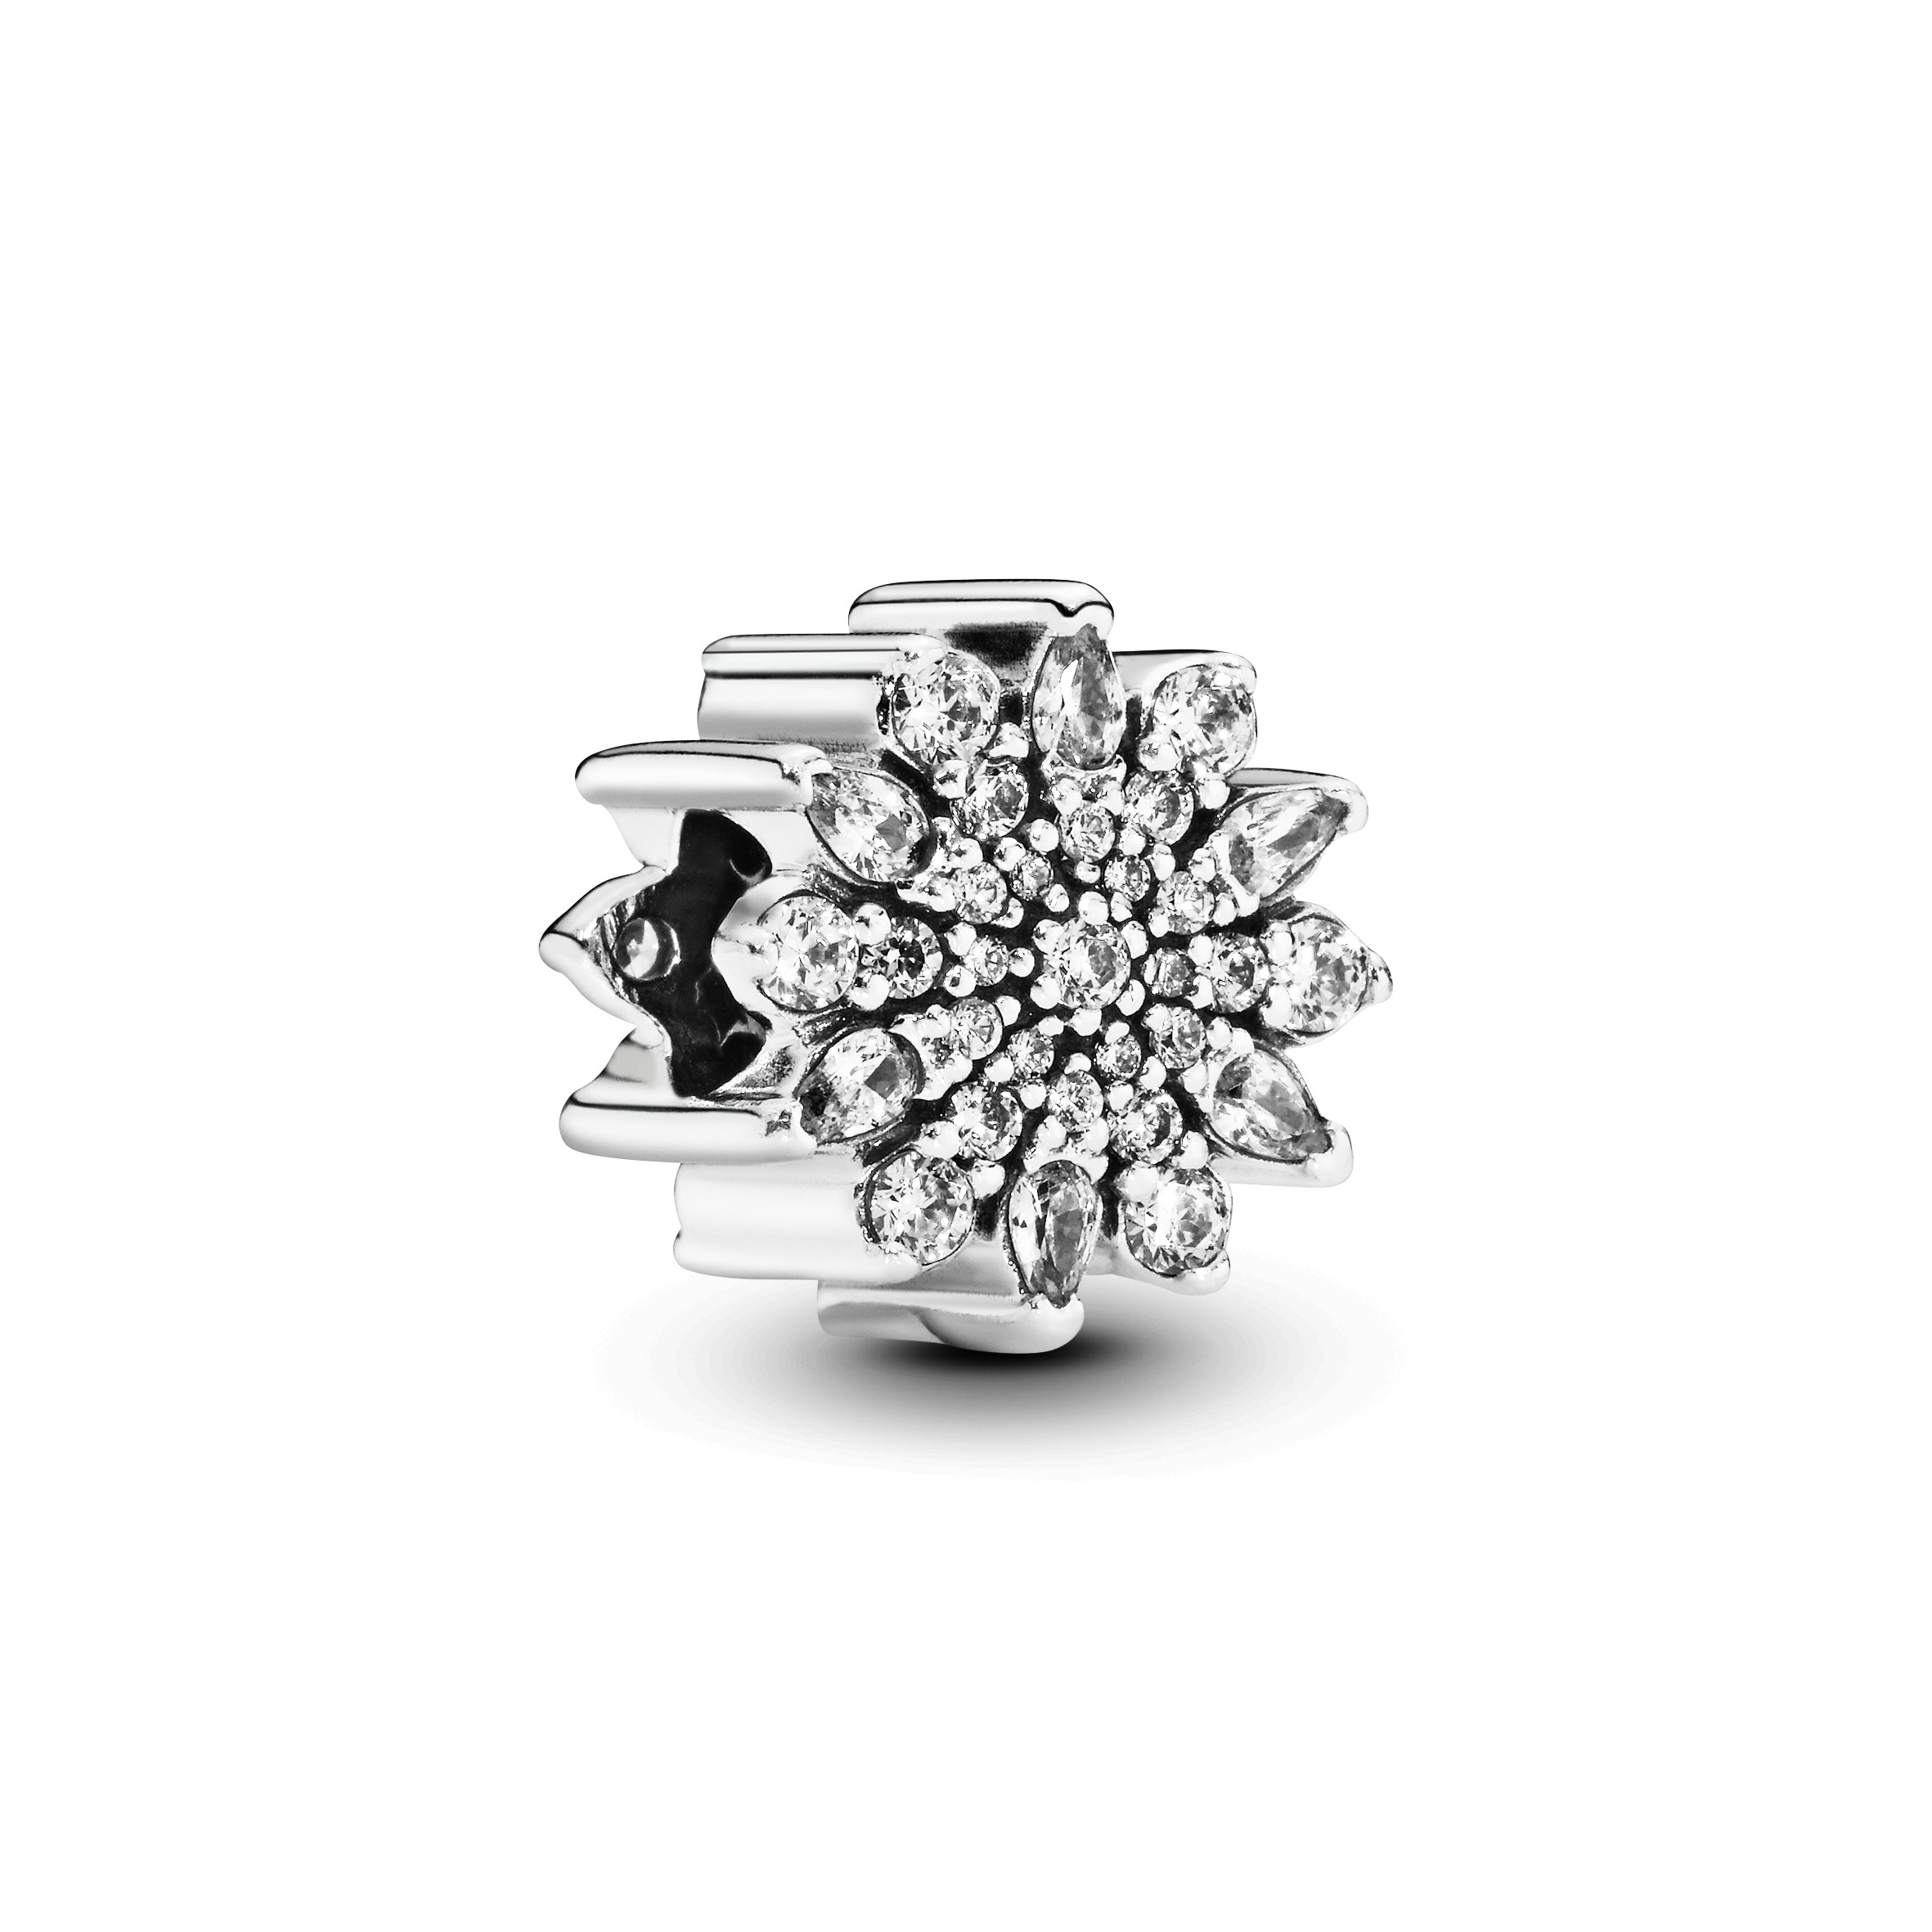 Ice crystal silver charm with clear cubic zirconia - Tilbehør / Smykker